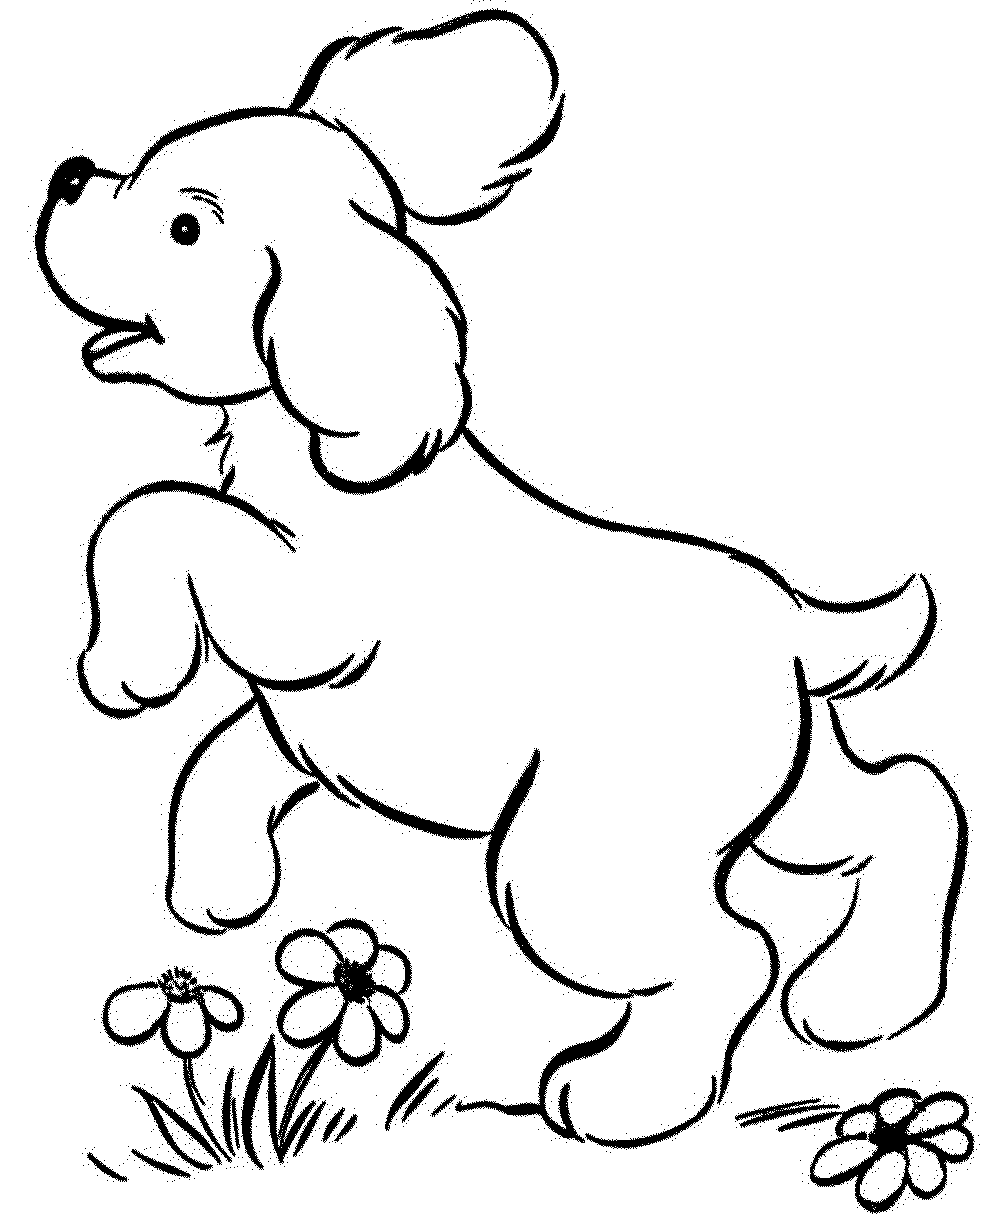 biscuit the dog coloring pages biscuit the dog coloring pages coloring home biscuit coloring the pages dog